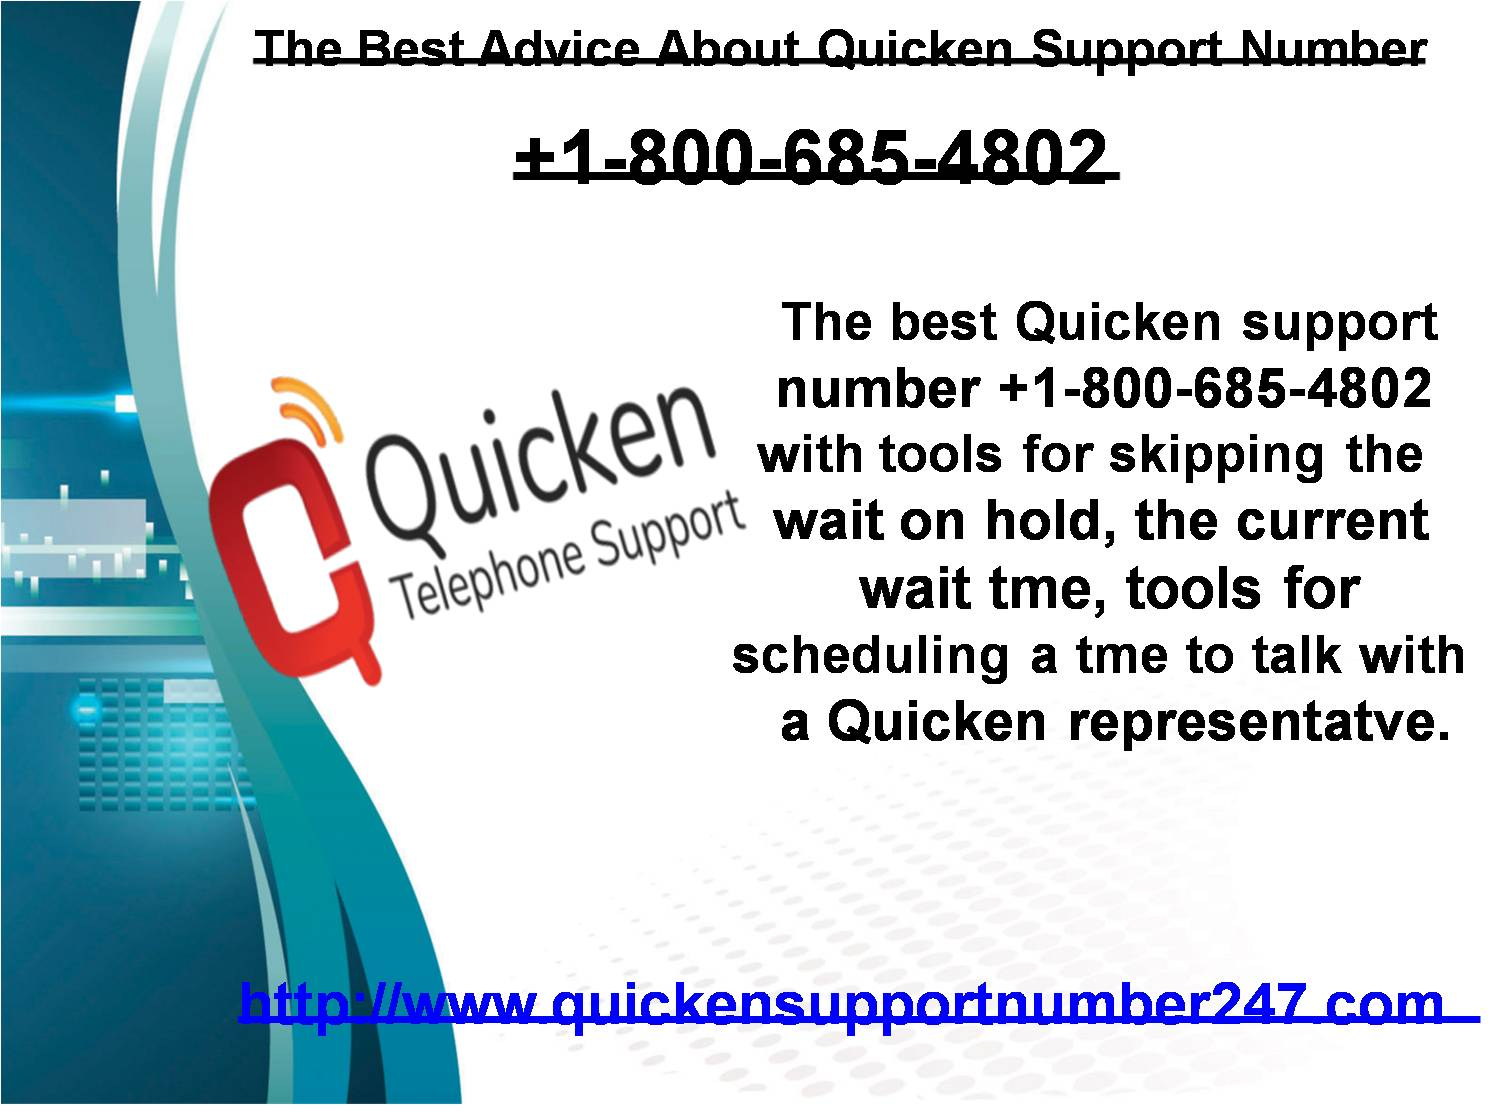 Calling +1-800-685-4802 For Quicken Customer Service